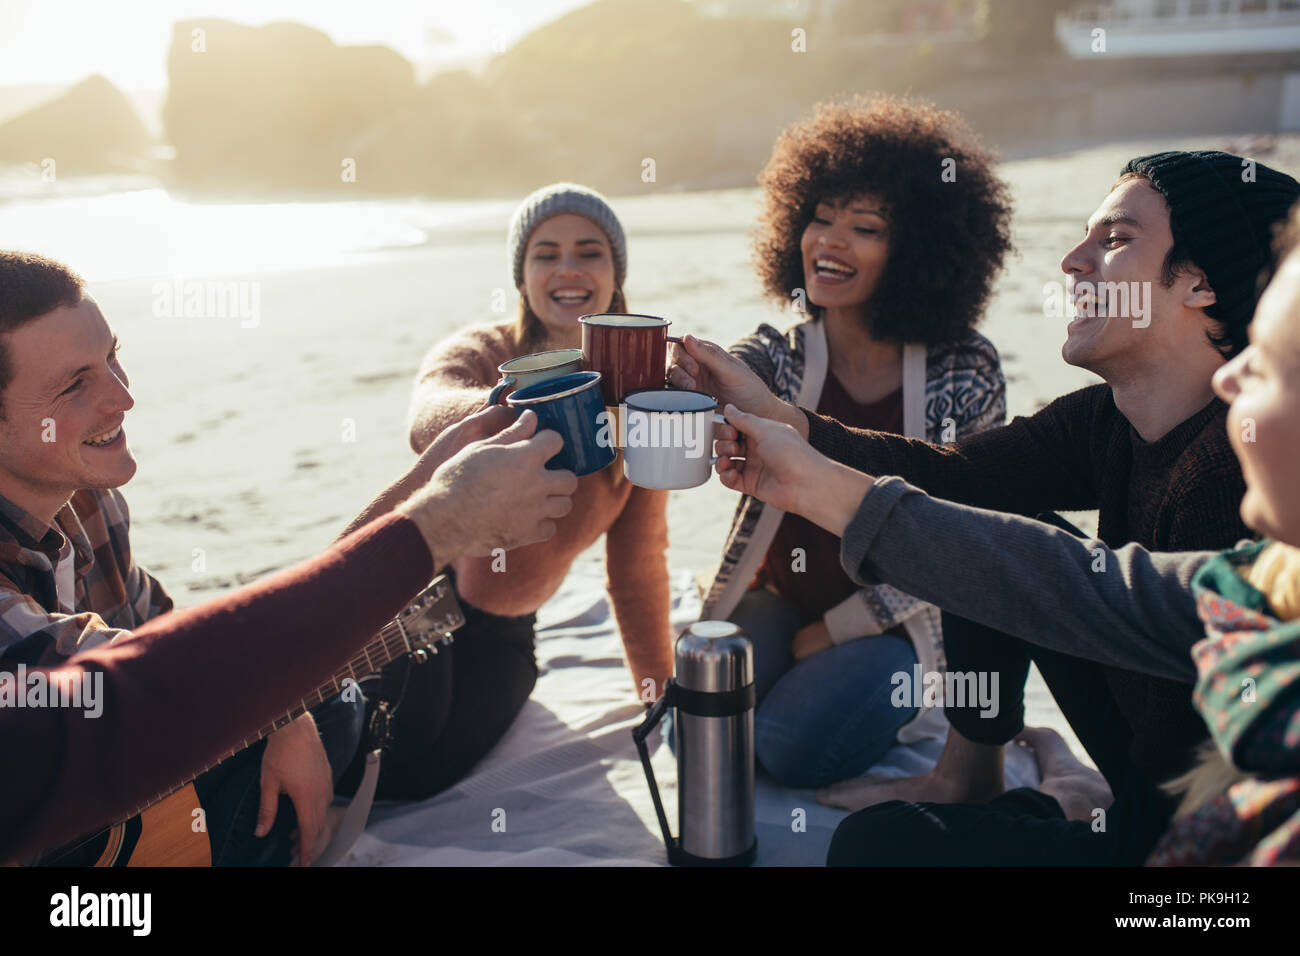 Group of multi-ethnic young people toasting coffee mugs on the beach. Group of friends spending time together at the beach having coffee. - Stock Image